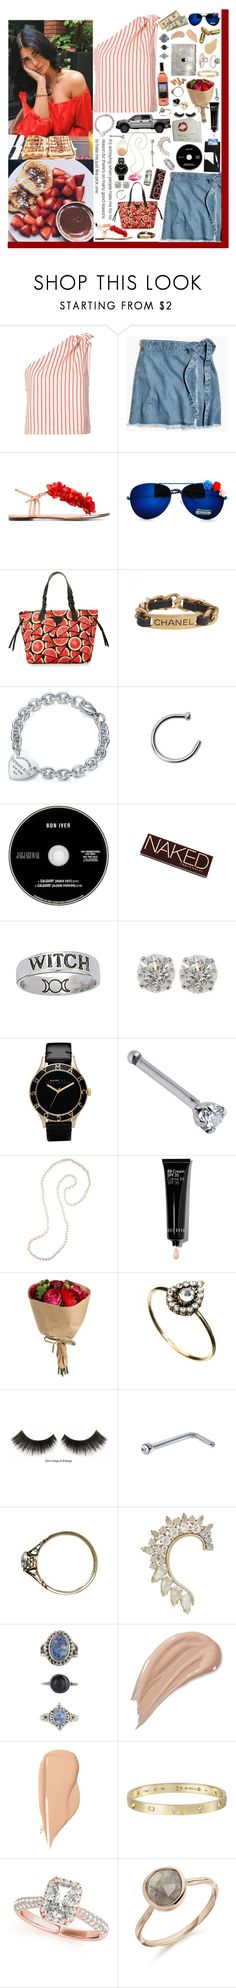 """""""Mama said I never should have done it, should have ended us before we ever started.❤️"""" by loretta-mccoy ❤ liked on Polyvore featuring Rosie Assoulin, Madewell, Charlotte Olympia, Dooney & Bourke, Chanel, Tiffany & Co., Urban Decay, Marc by Marc Jacobs, Gabrielle Sanchez and Bobbi Brown Cosmetics"""